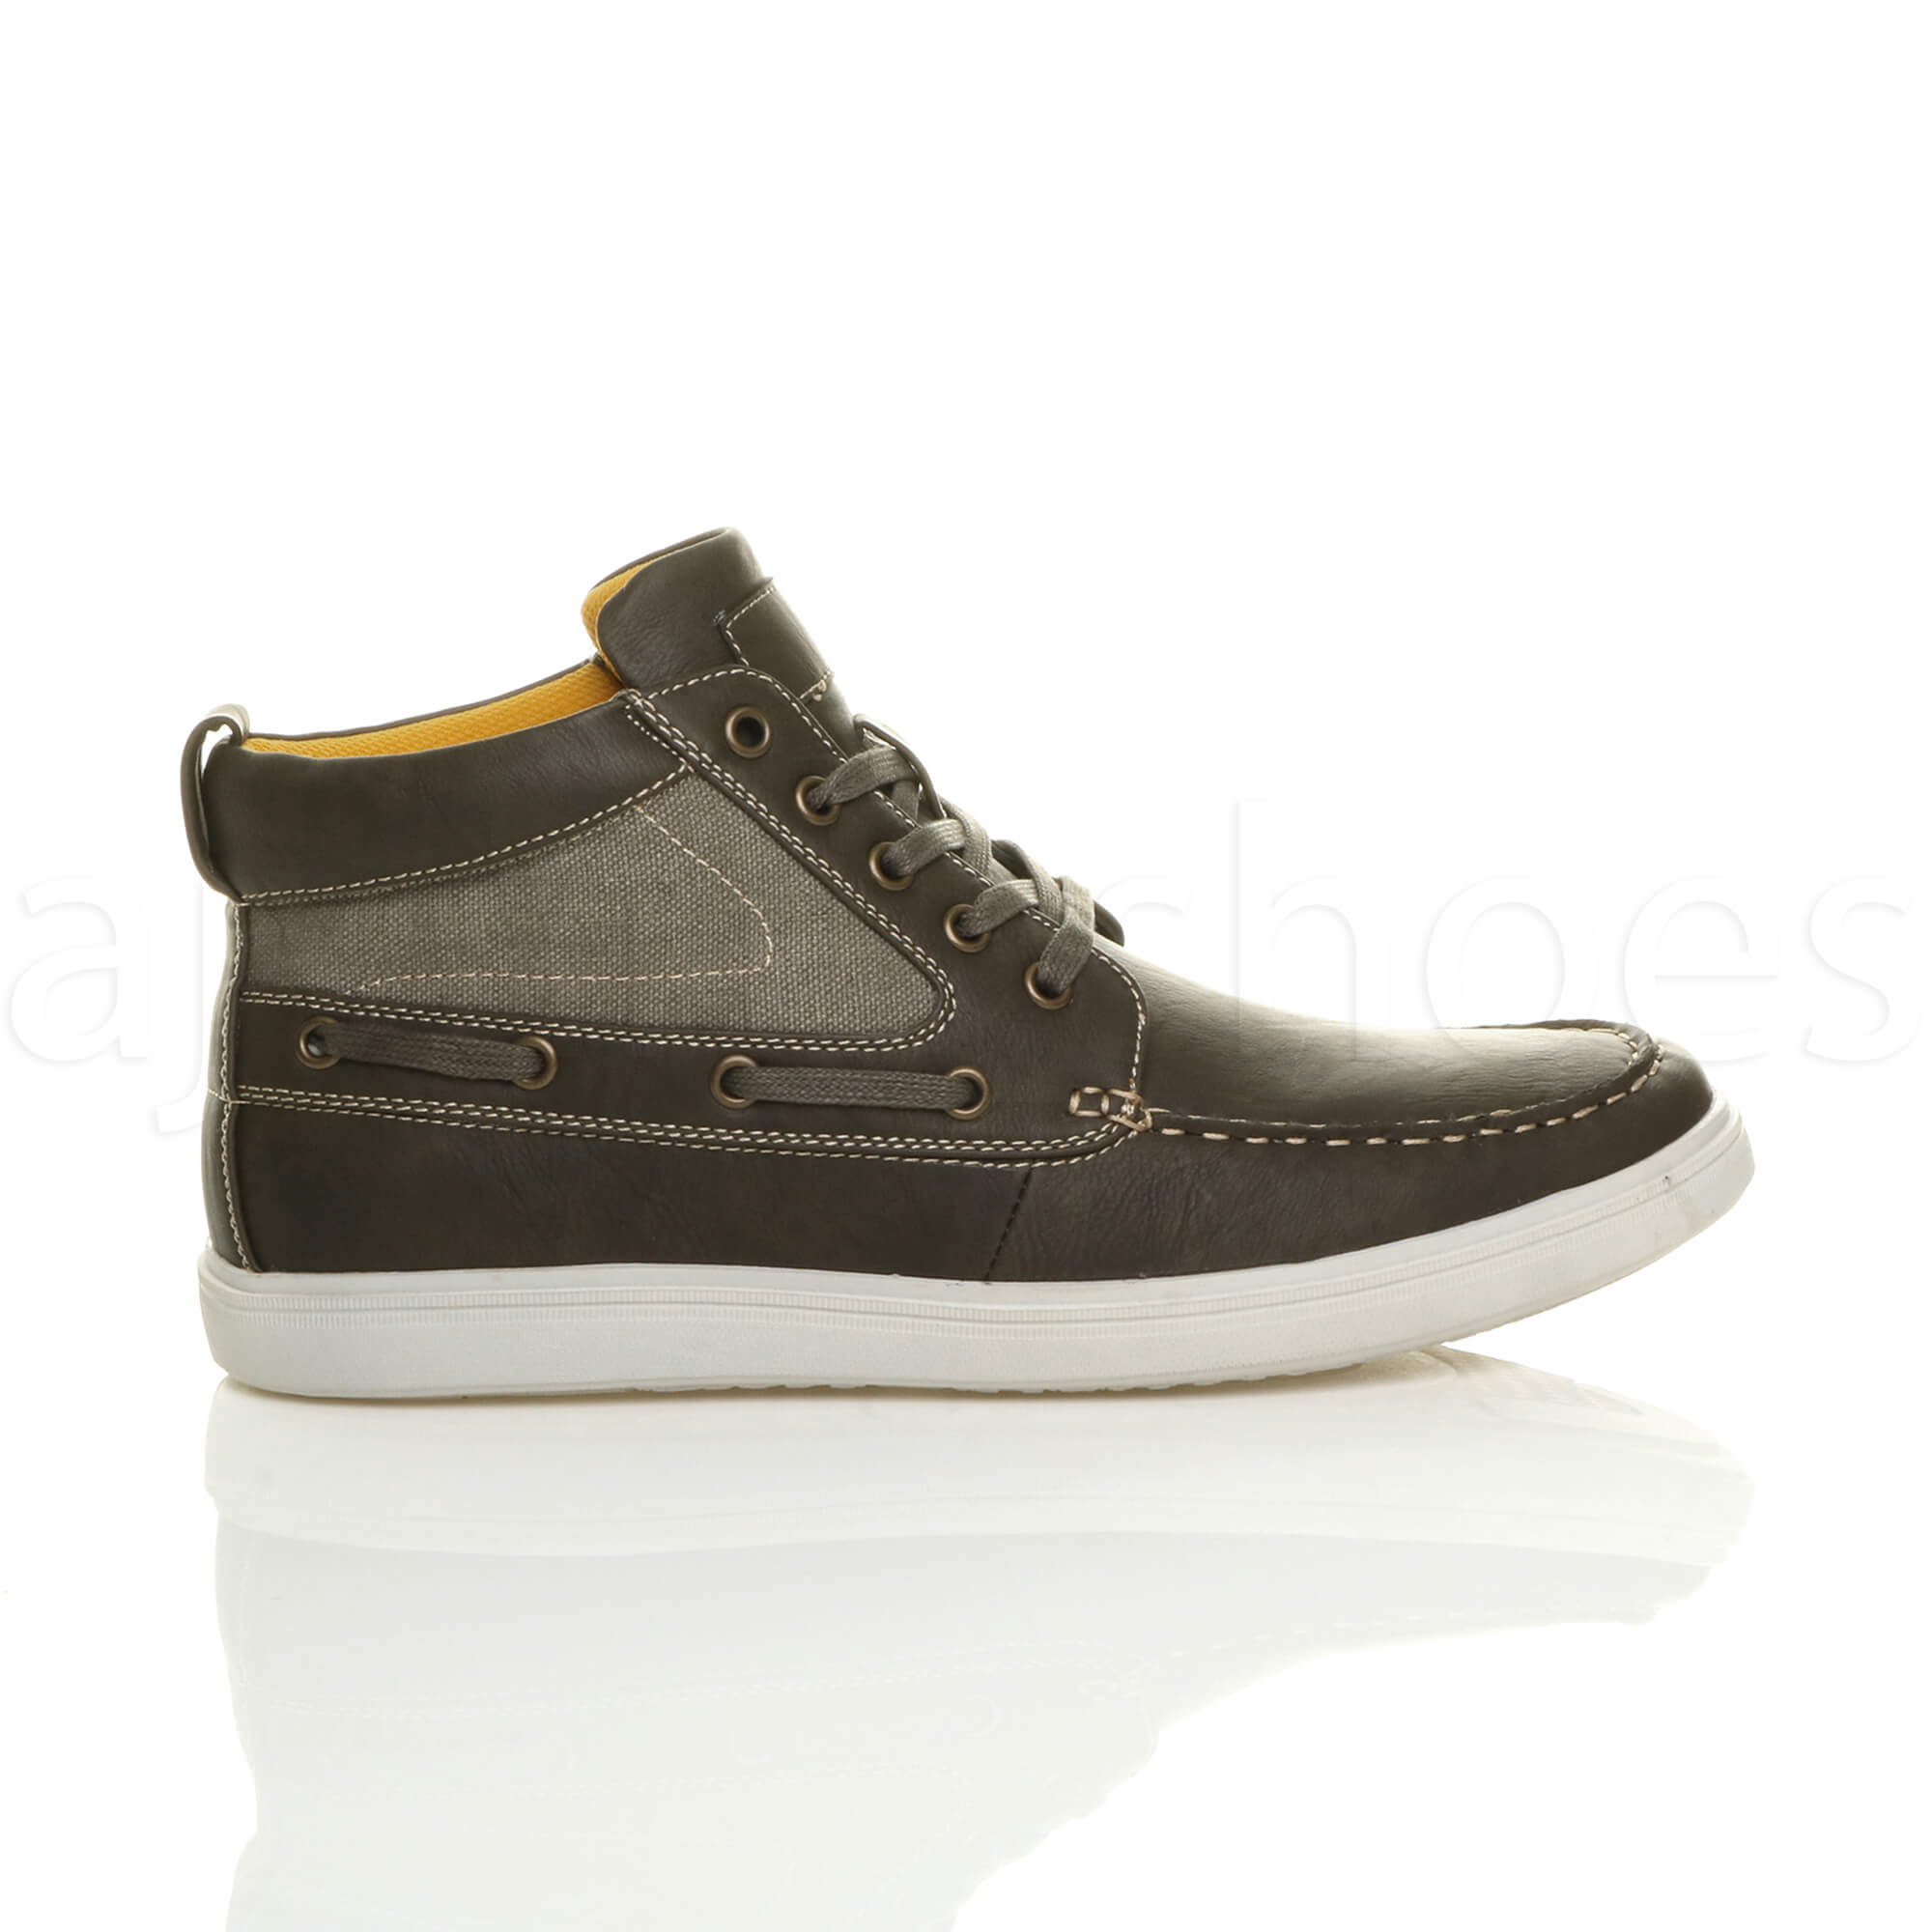 MENS-FLAT-LACE-UP-CASUAL-BOAT-CONTRAST-HI-TOP-TRAINERS-ANKLE-BOOTS-PUMPS-SIZE thumbnail 17